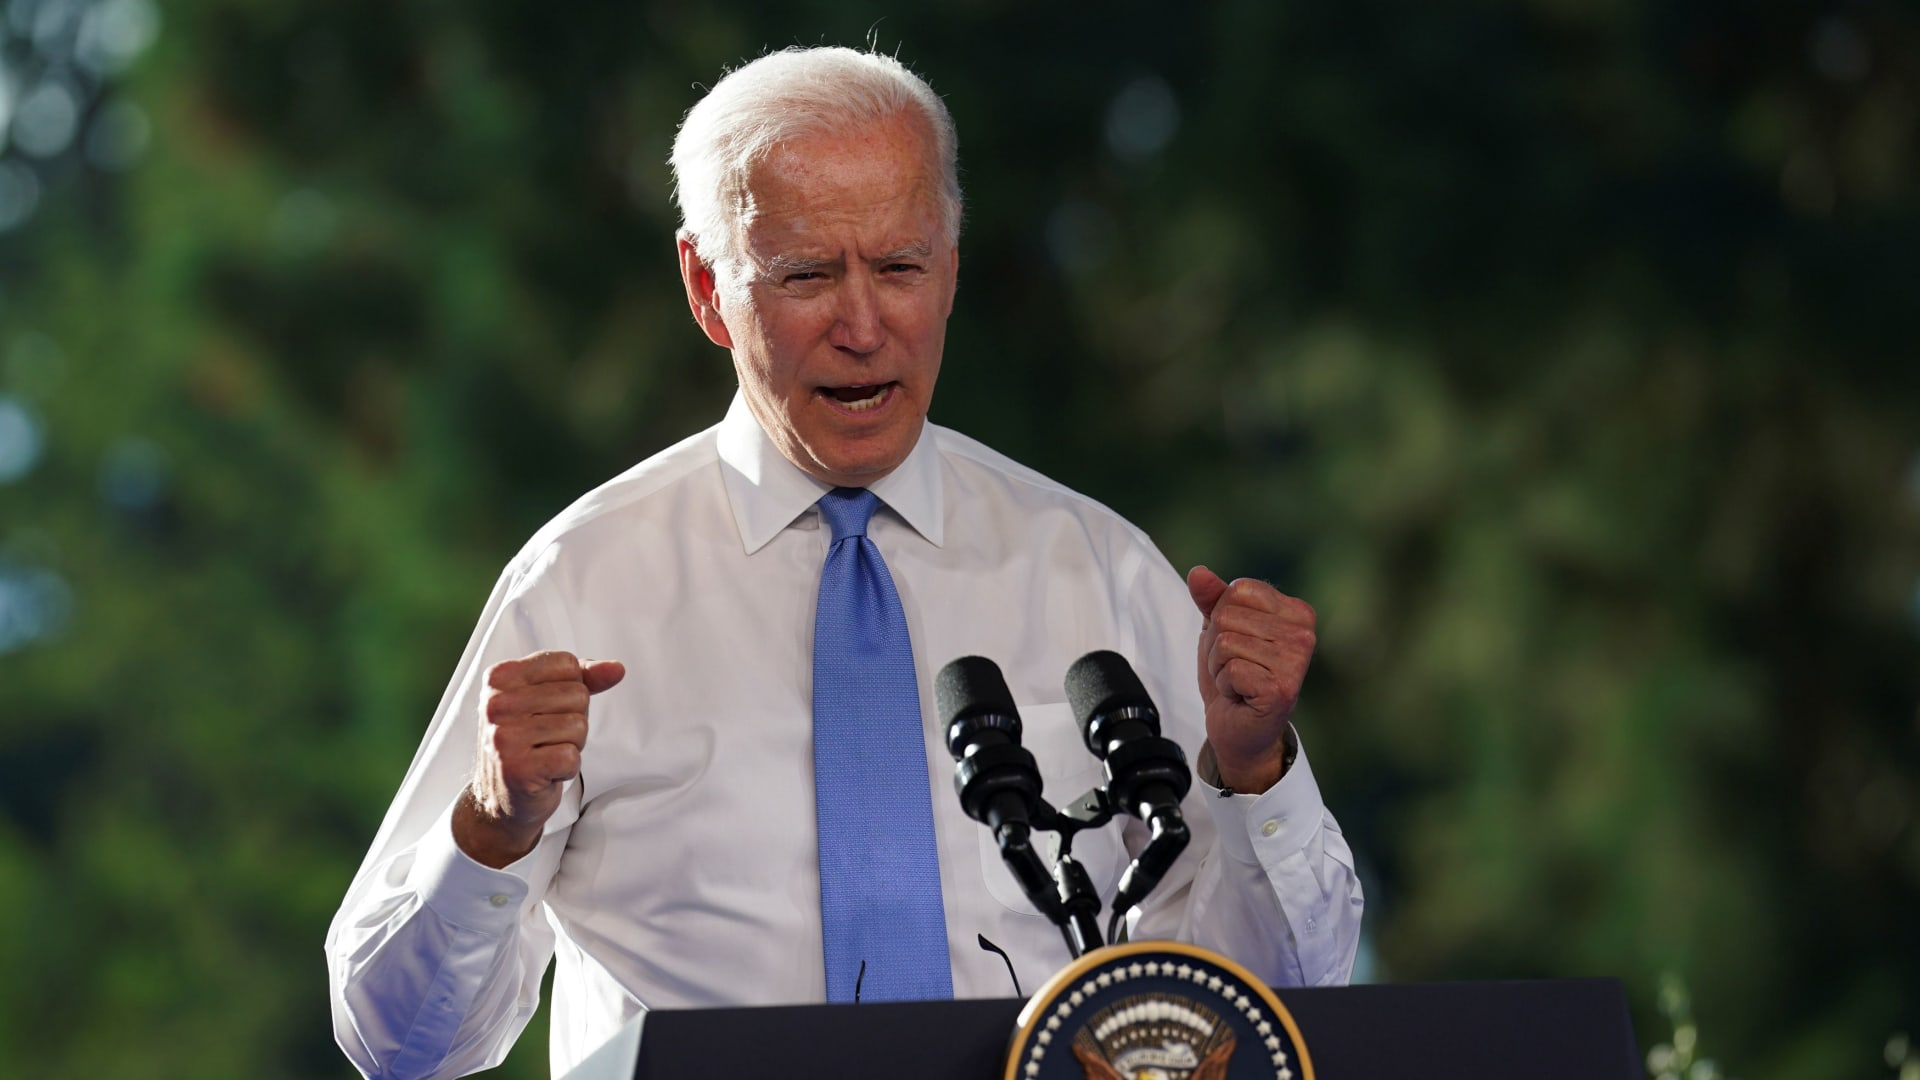 U.S. President Joe Biden gestures as he holds a news conference after the U.S.-Russia summit with Russia's President Vladimir Putin, in Geneva, Switzerland, June 16, 2021.